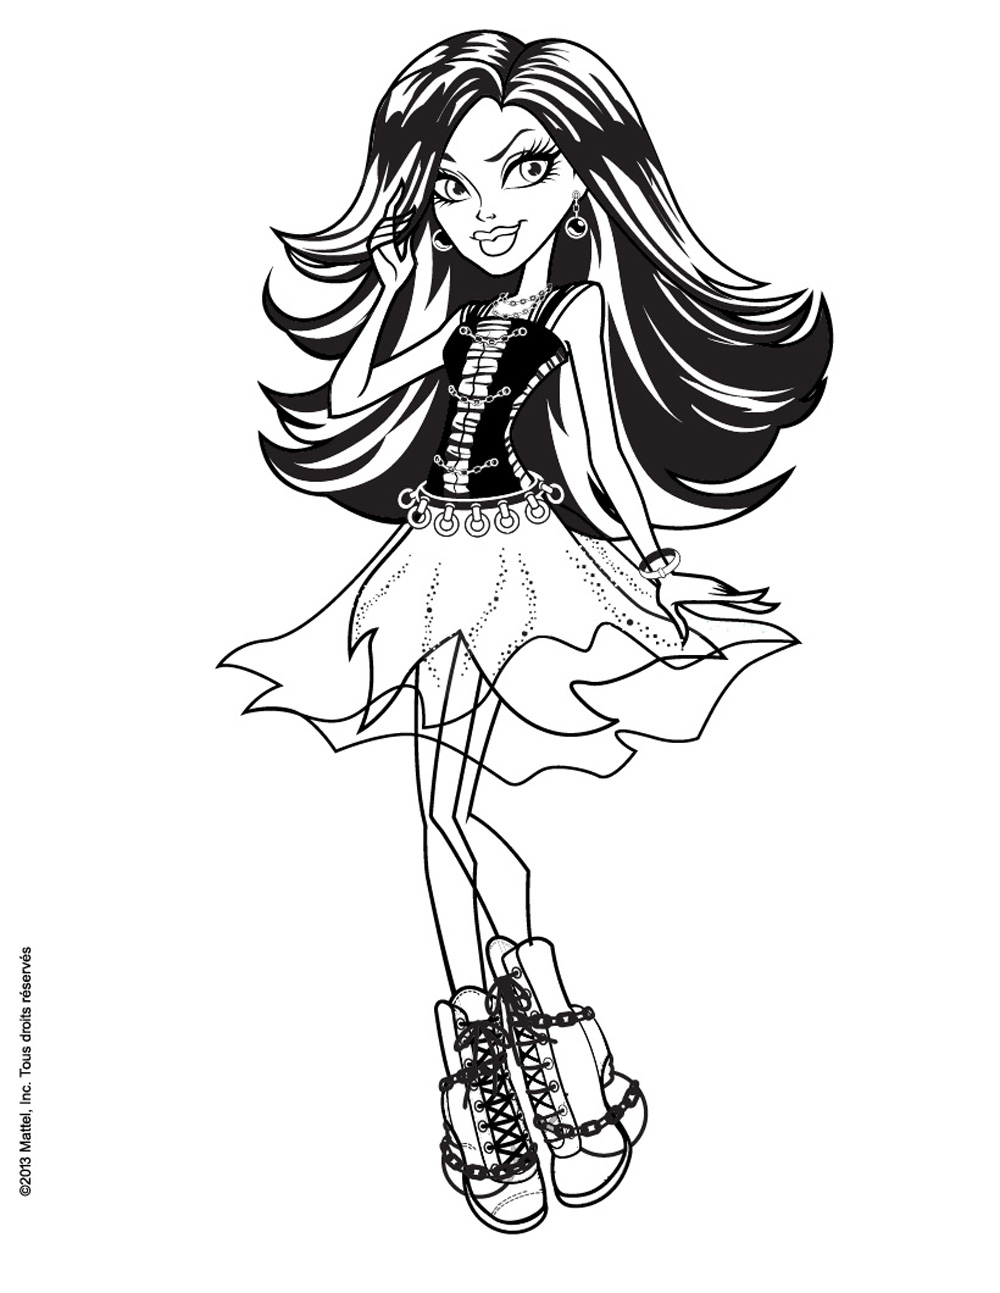 Incredible Monster High coloring page to print and color for free